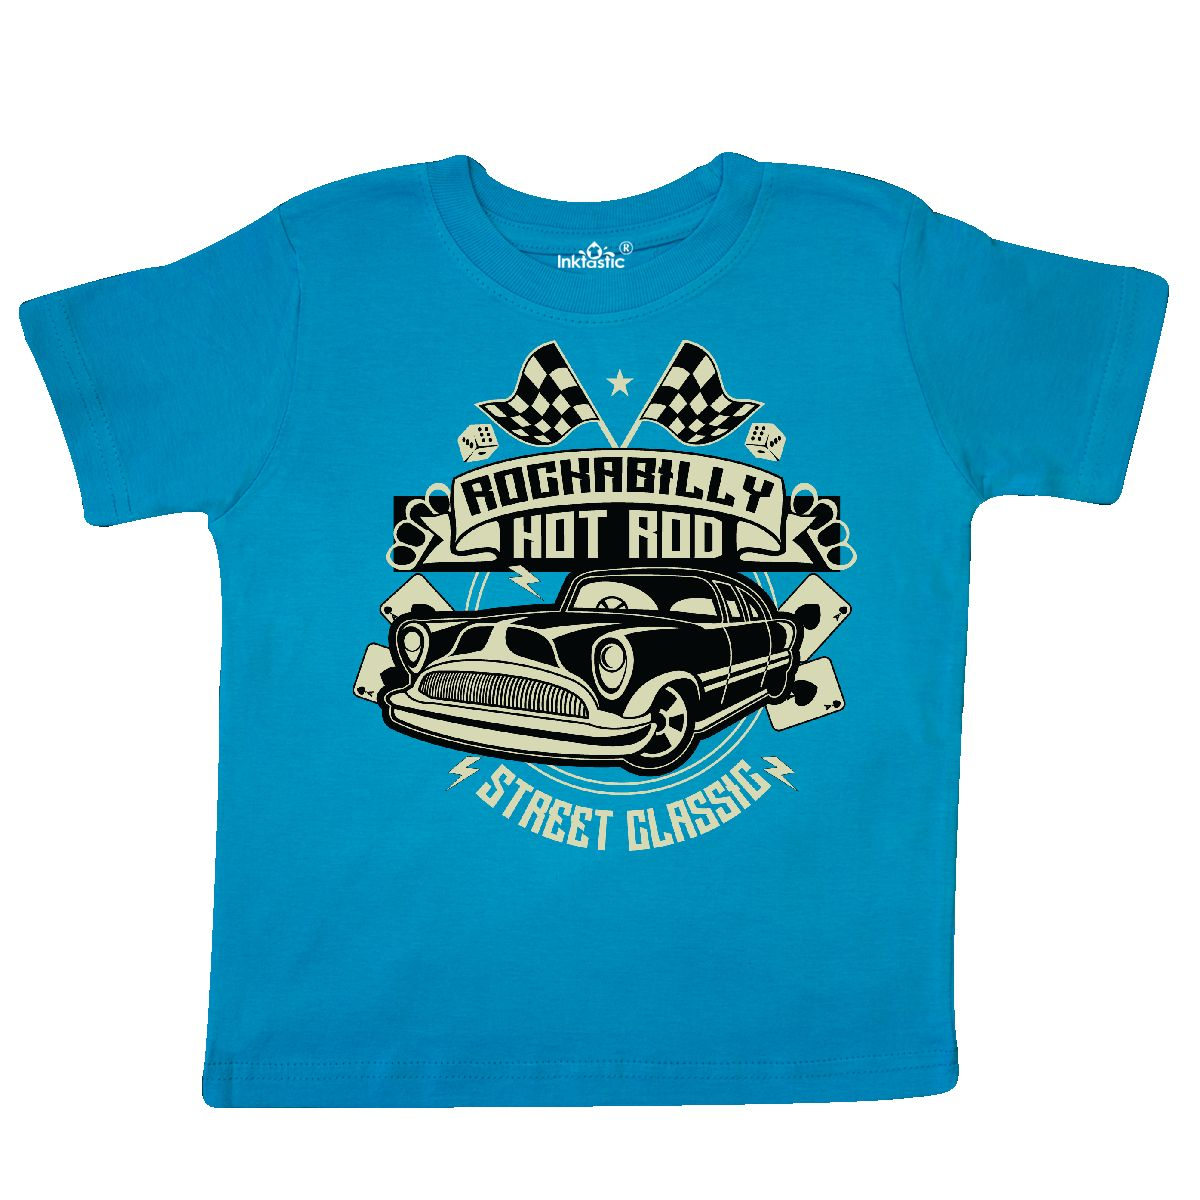 Inktastic-Rockabilly-Hotrod-Toddler-T-Shirt-Hot-Rod-Vintage-Car-Racing-Street thumbnail 13